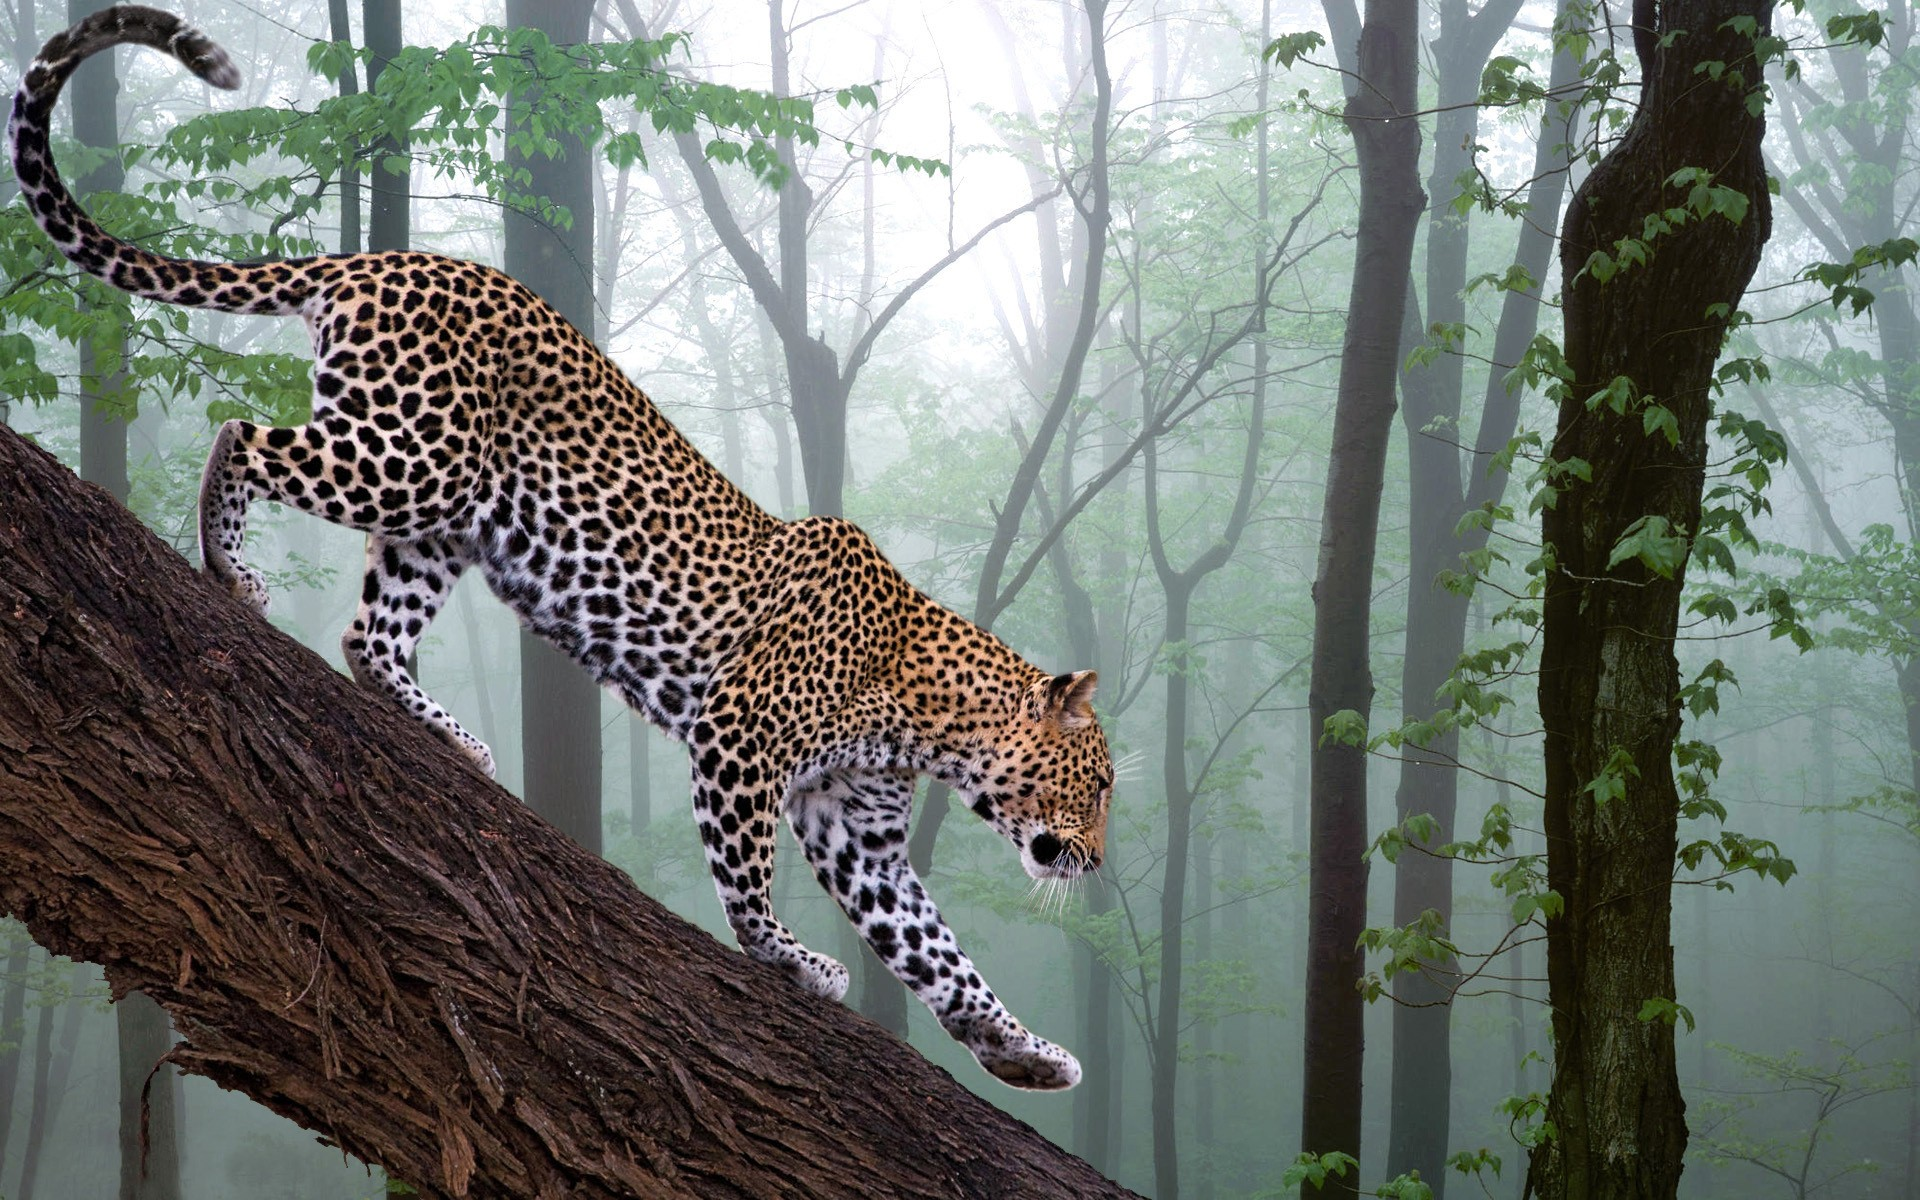 Leopard stalking the tree